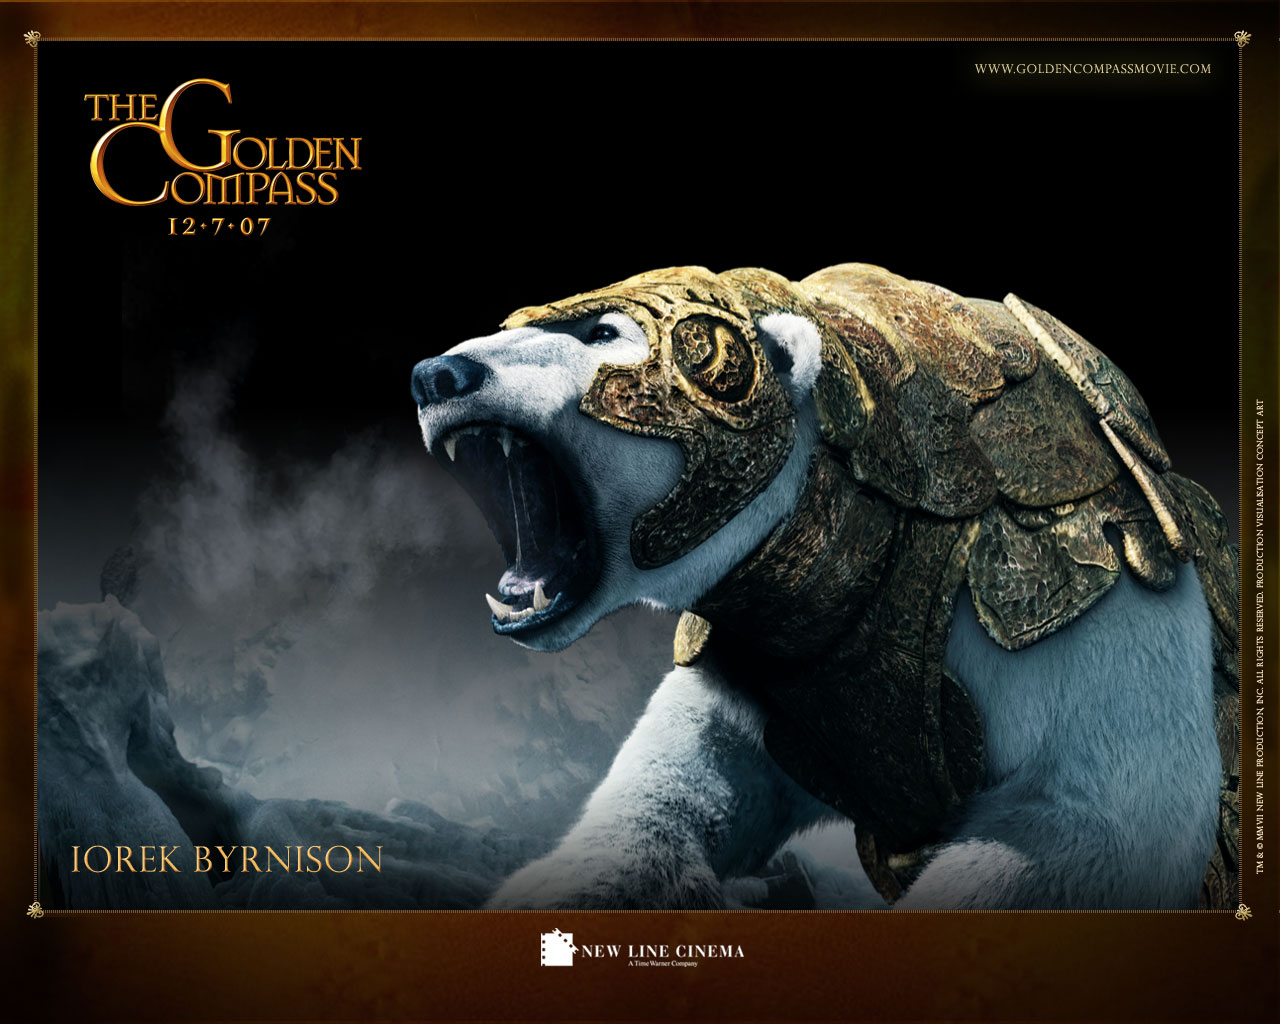 The Golden Compass Upcoming